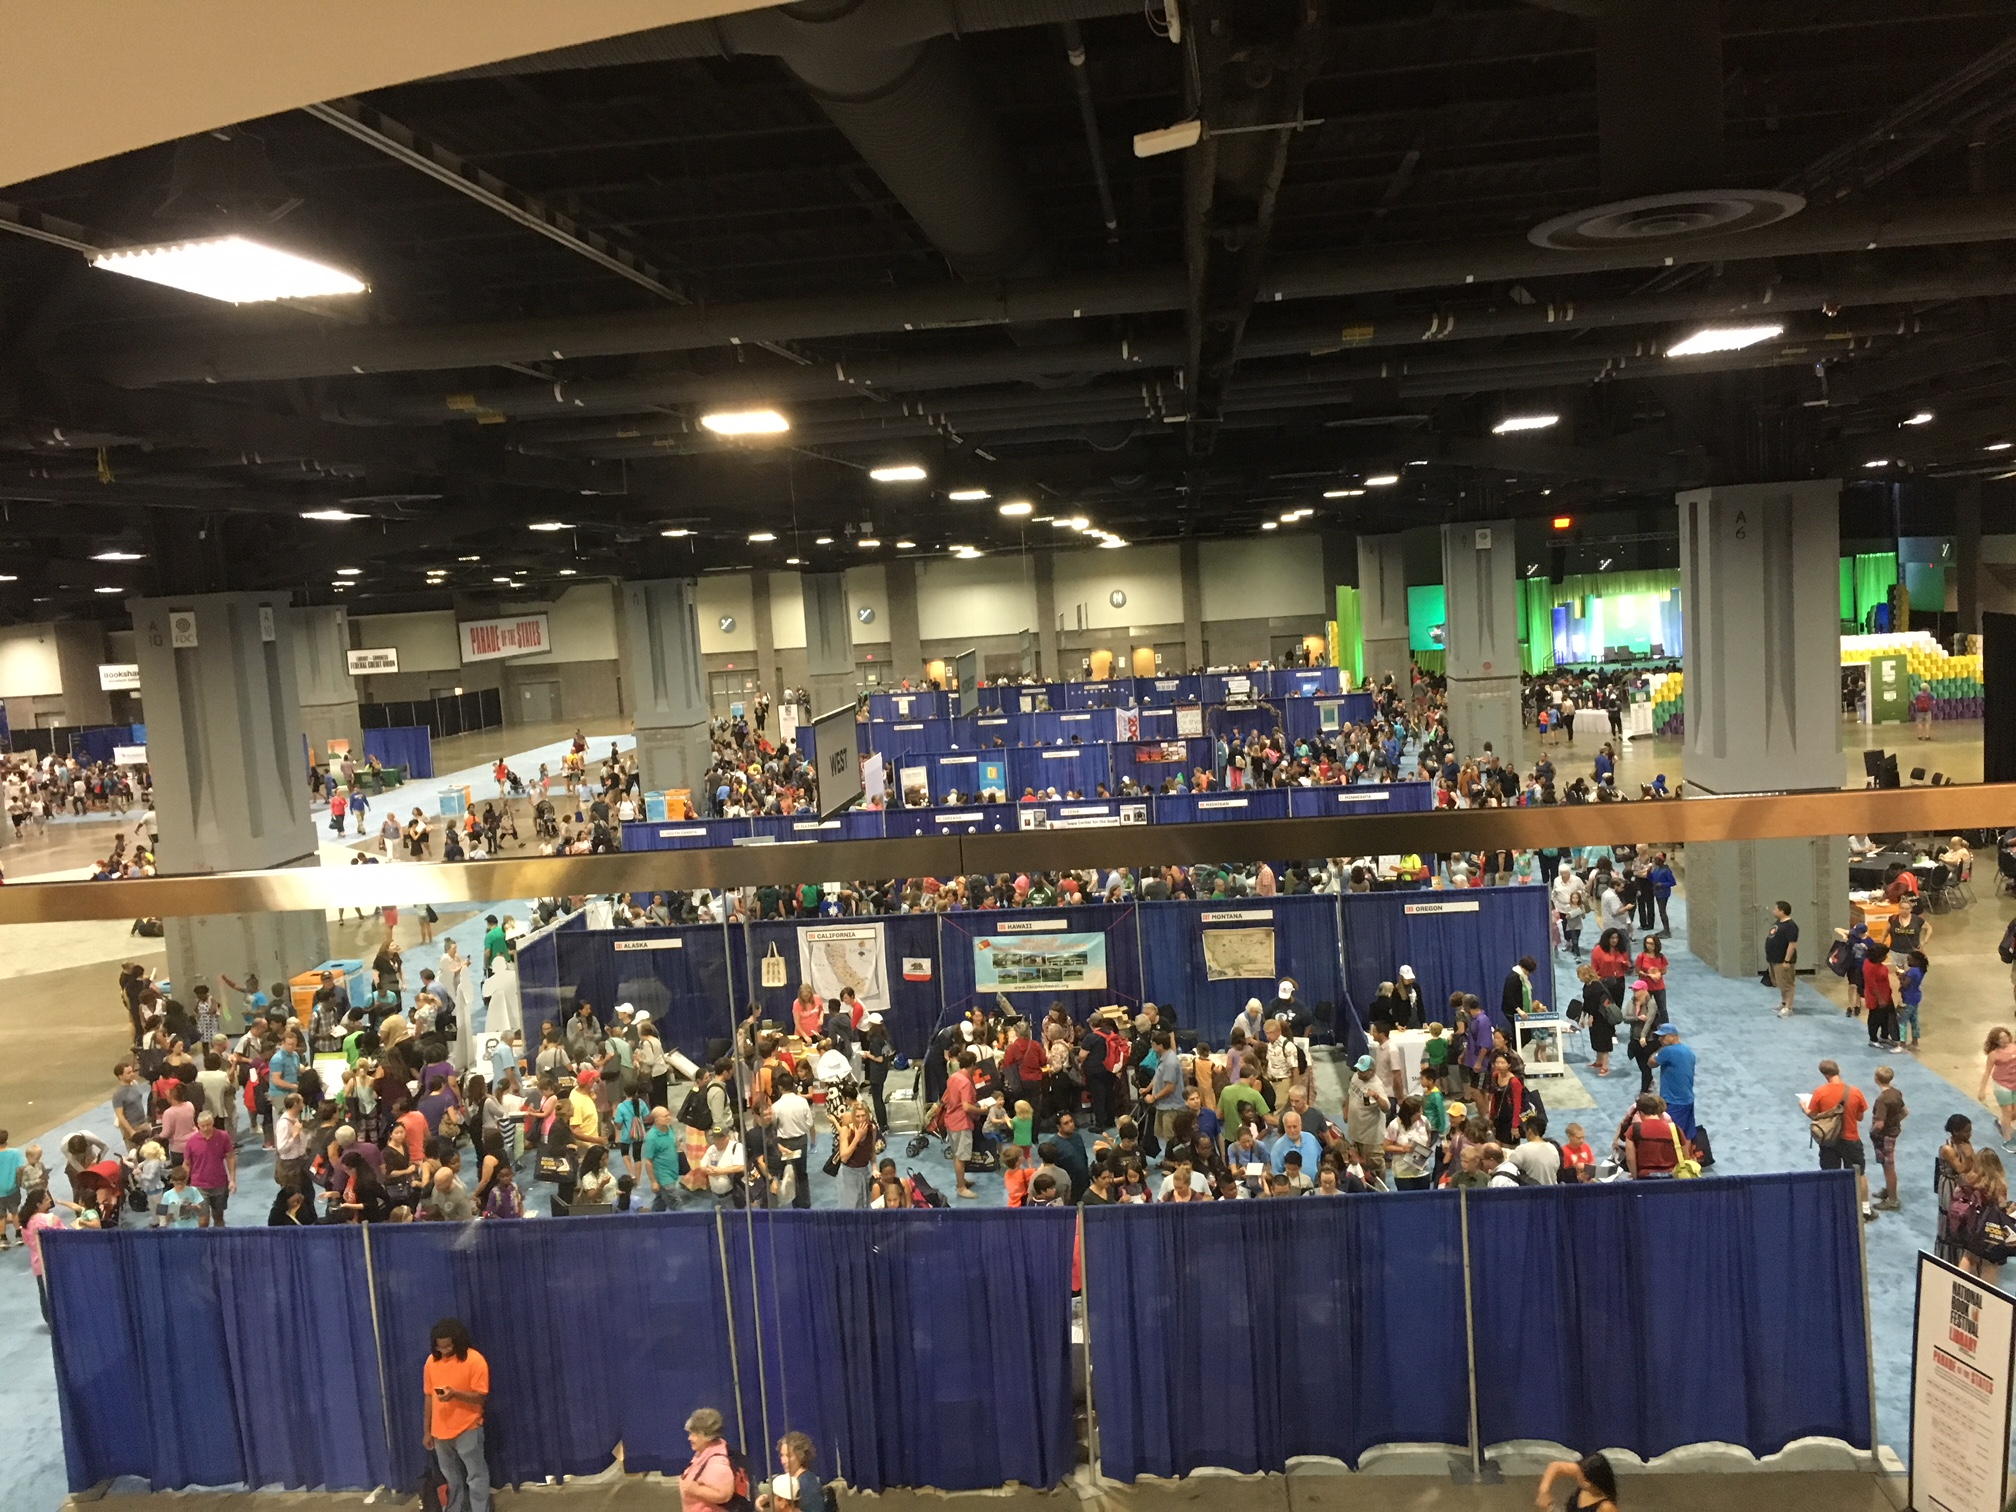 At least 200,000 book lovers attended the 2018 National Book Festival at the Walter E. Washington Convention Center.